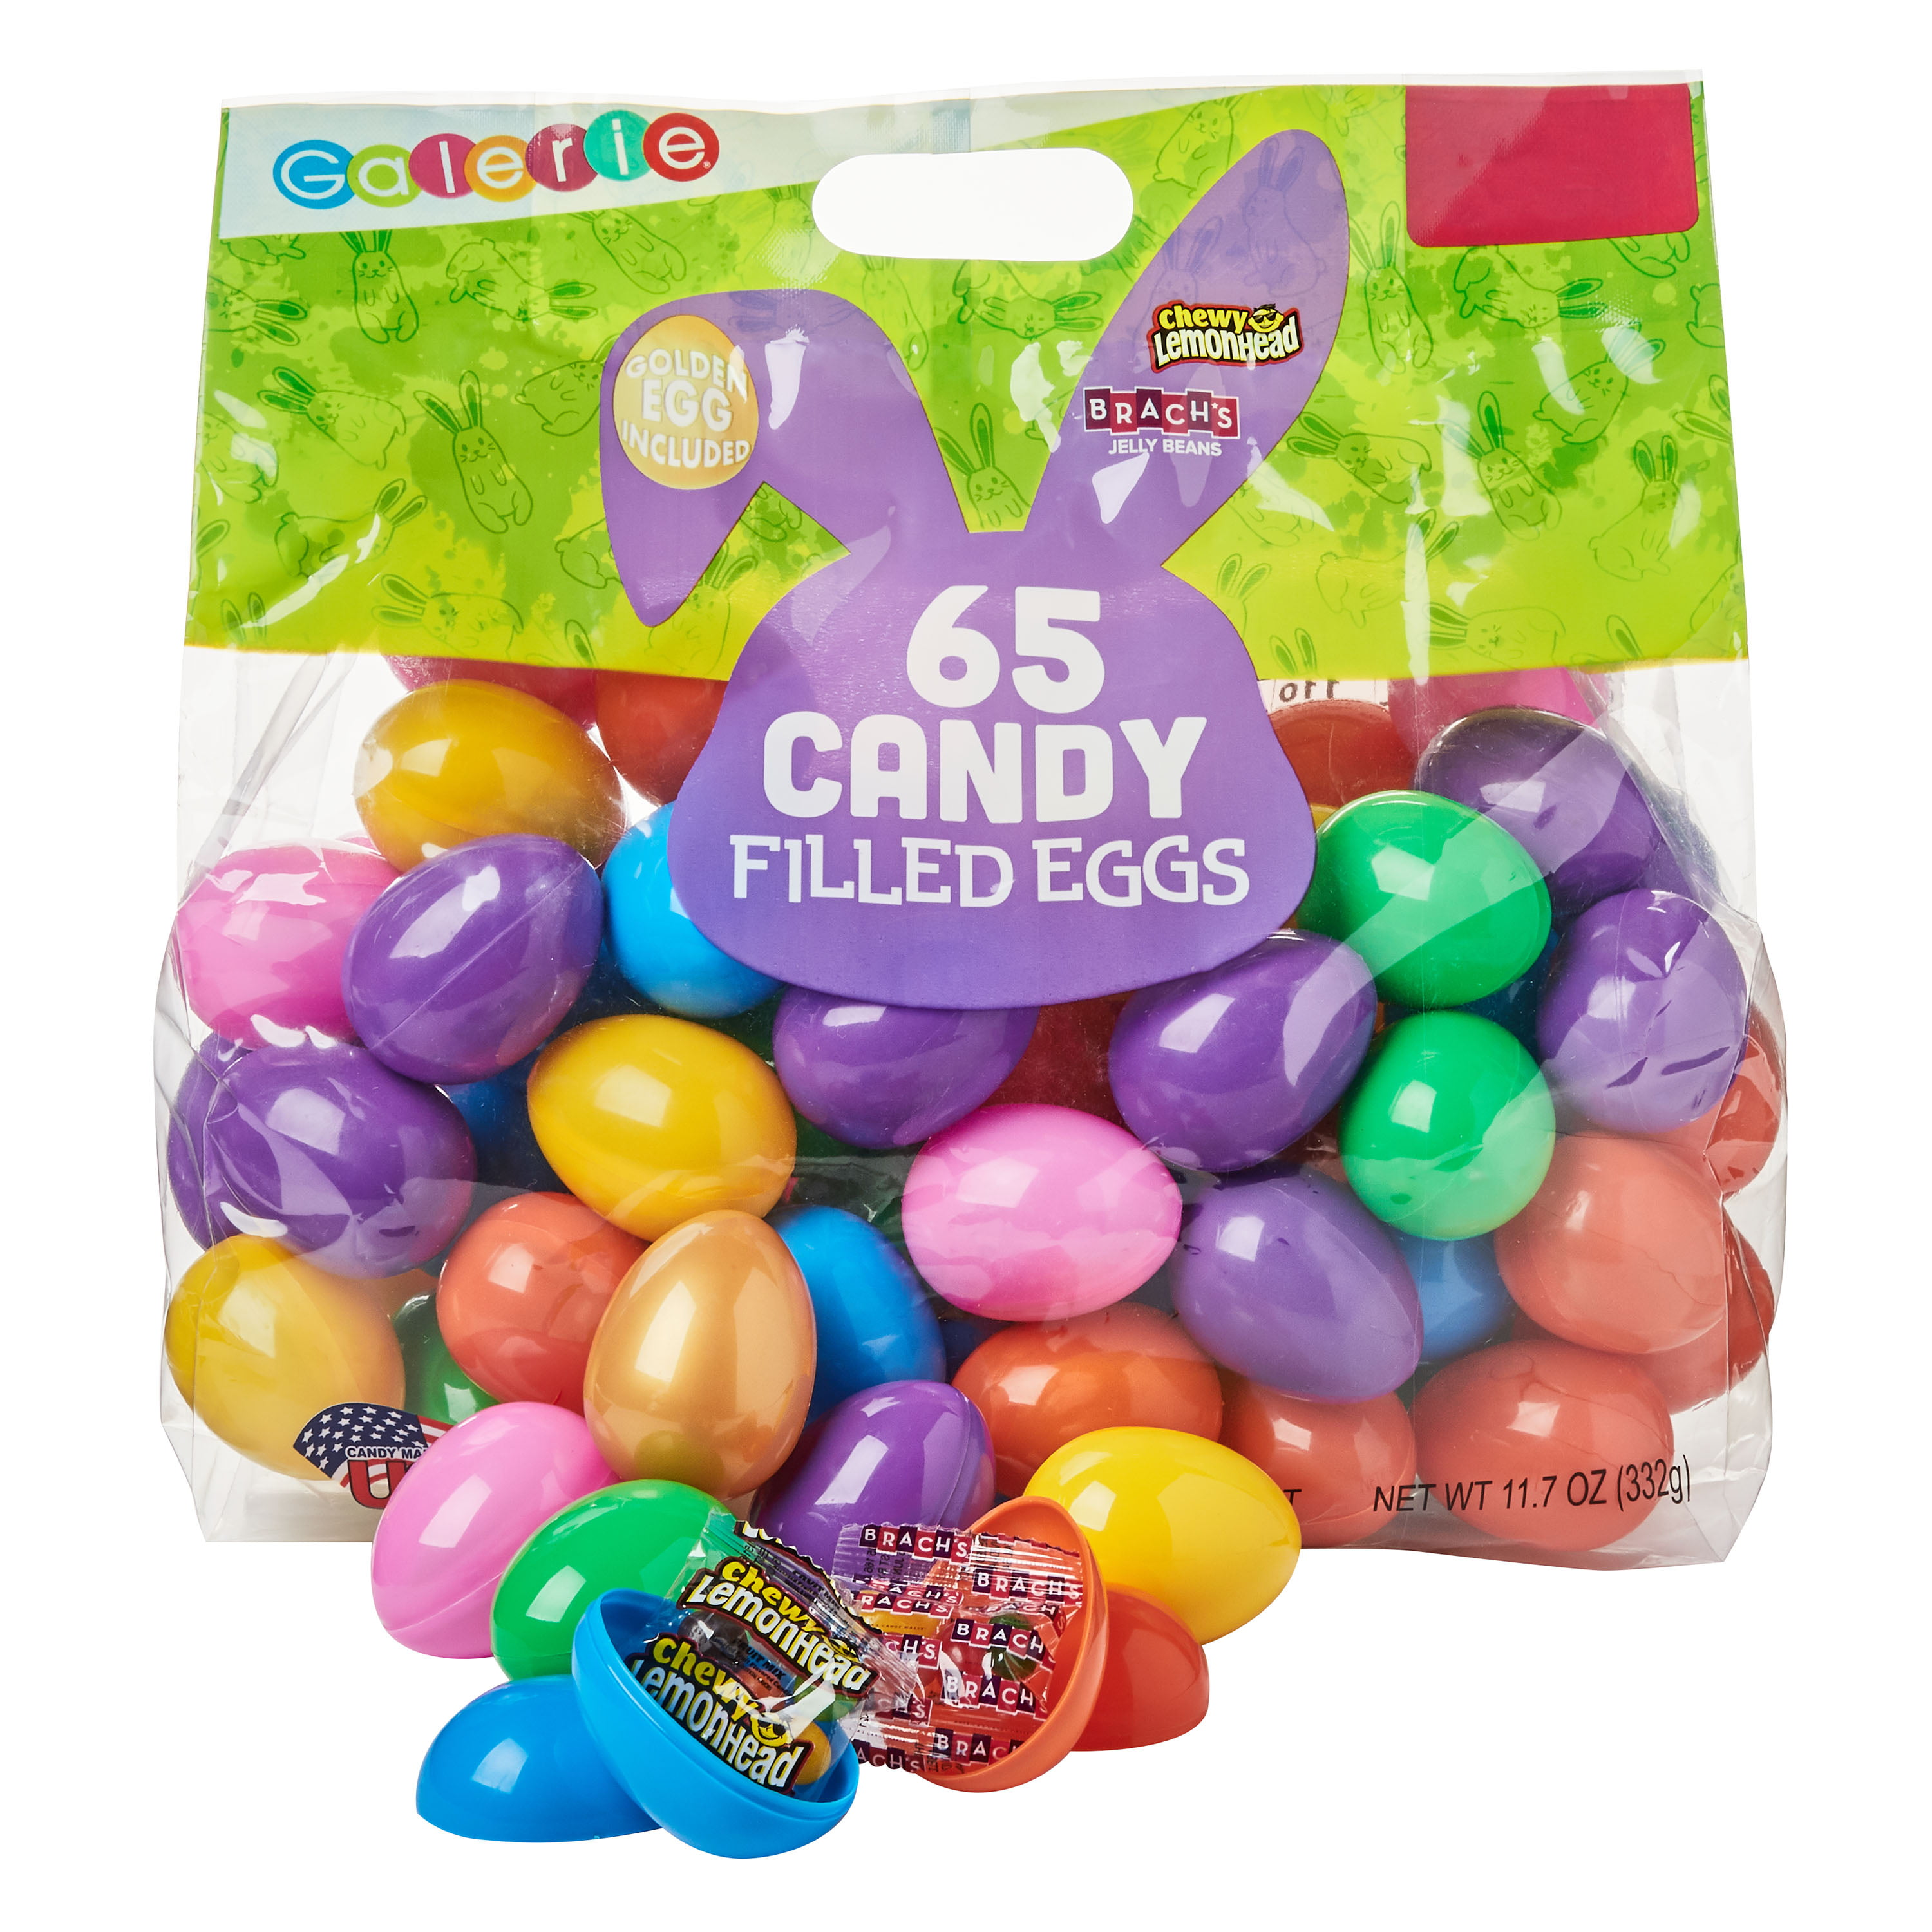 Galerie Egg Hunt with Brach's Jelly Beans & chewy Lemonheads Candy with Stickers, 65ct